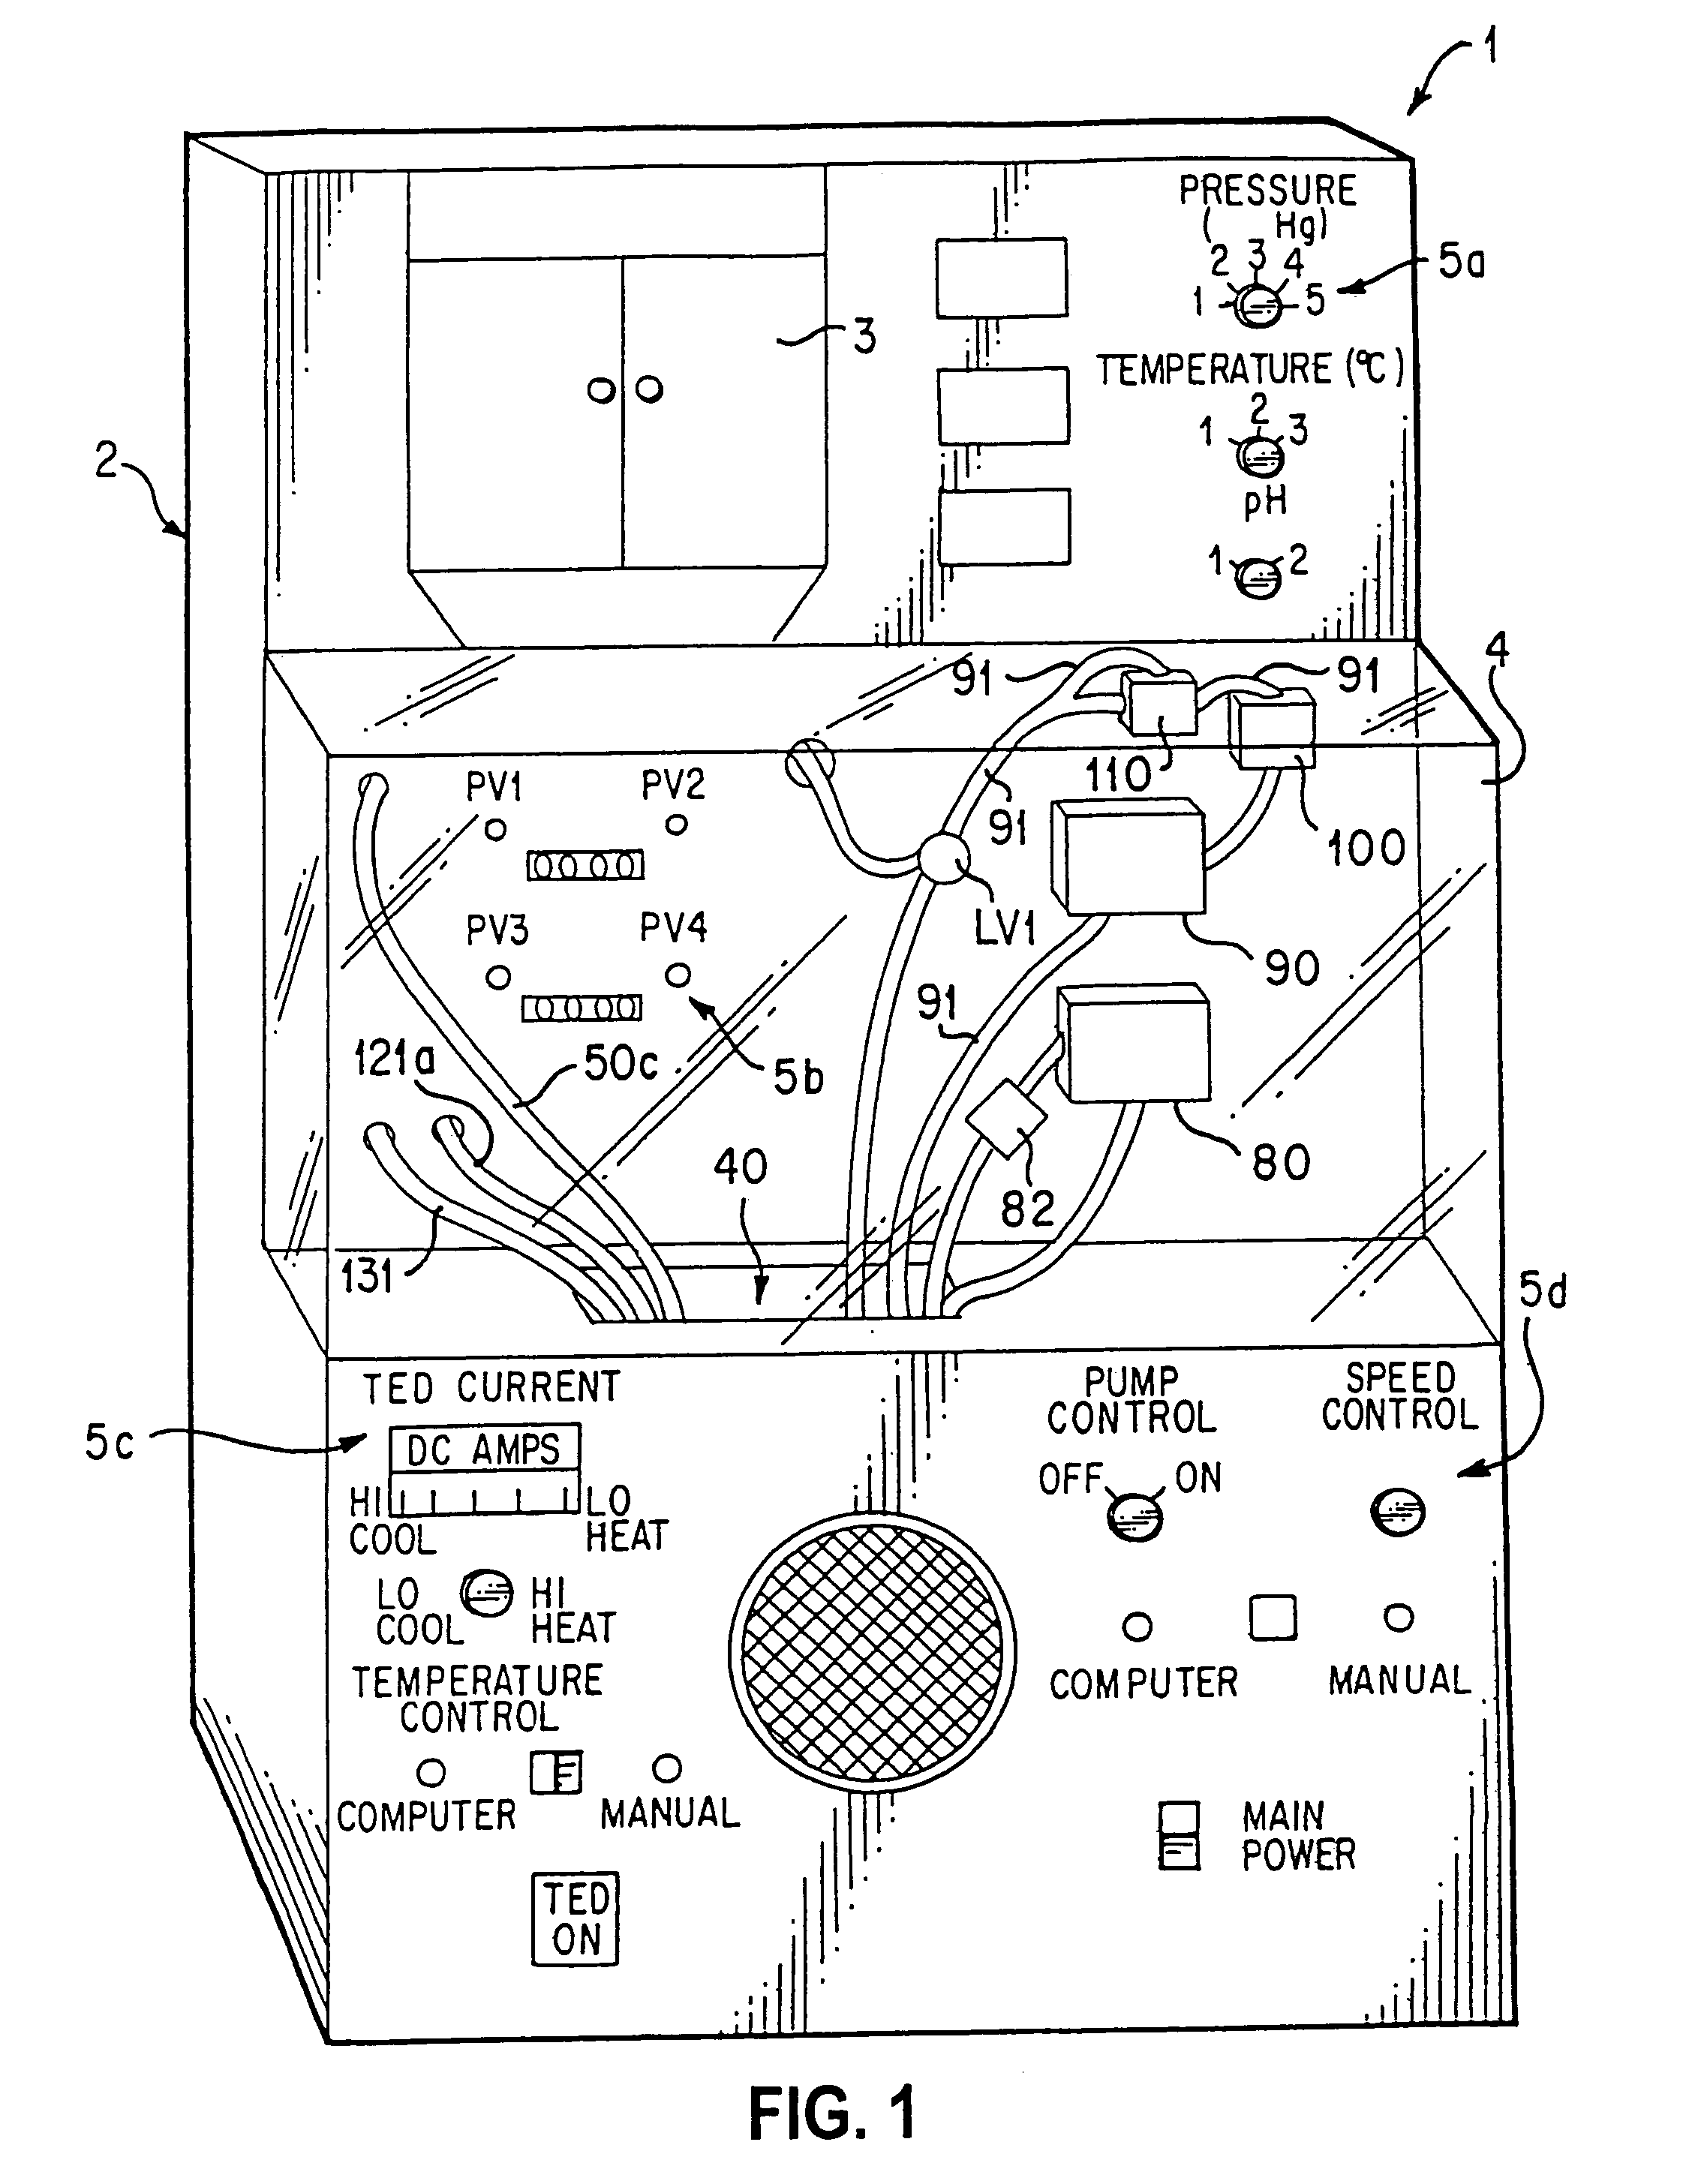 Brevet Us7504201 Method For Perfusing An Organ And Isolating Backflow Preventer Diagram Car Tuning Patent Drawing